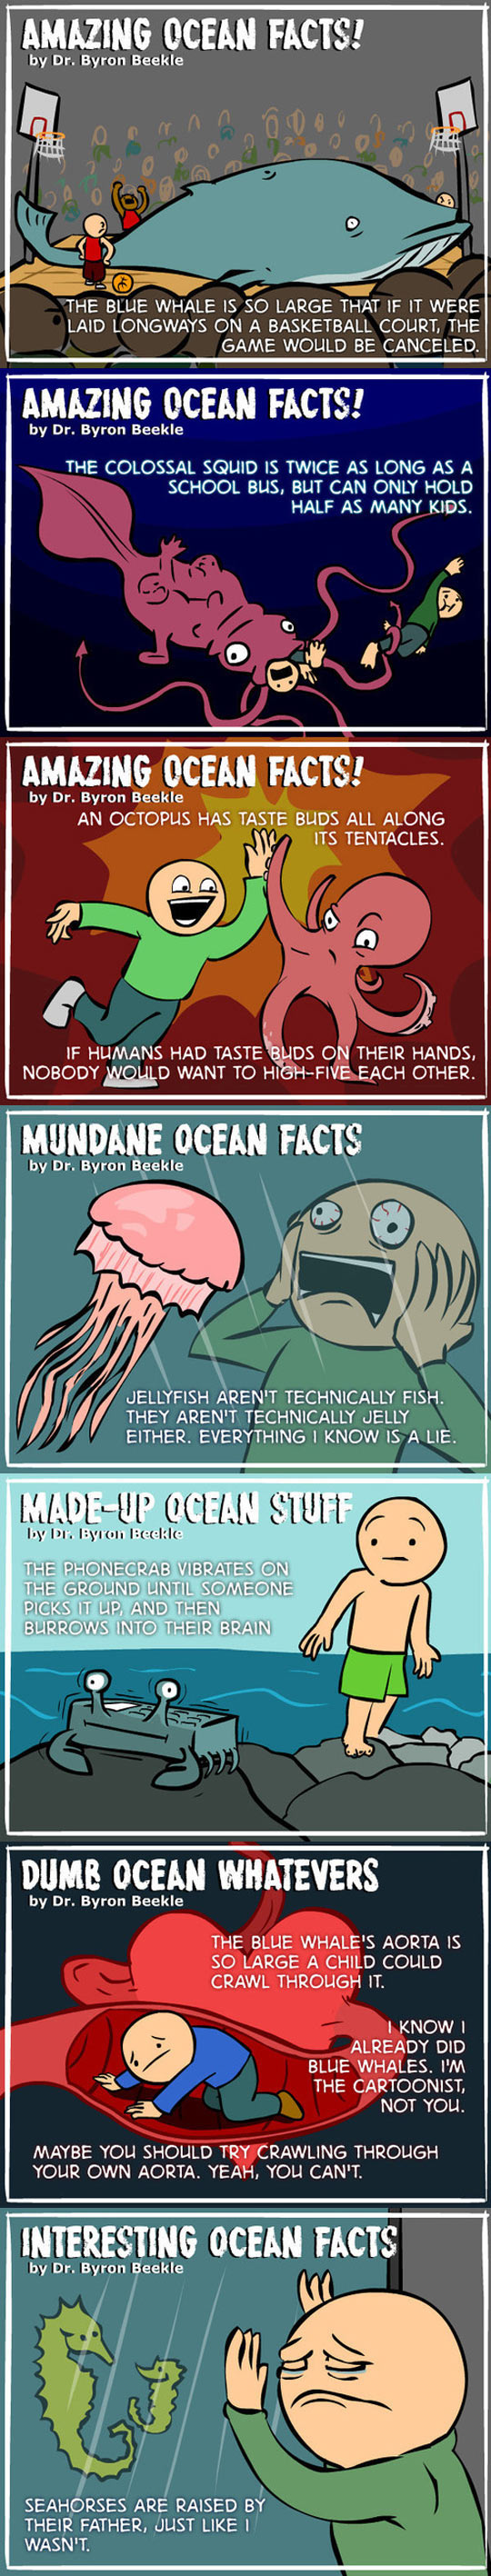 Crazy Ocean Facts You Probably Don